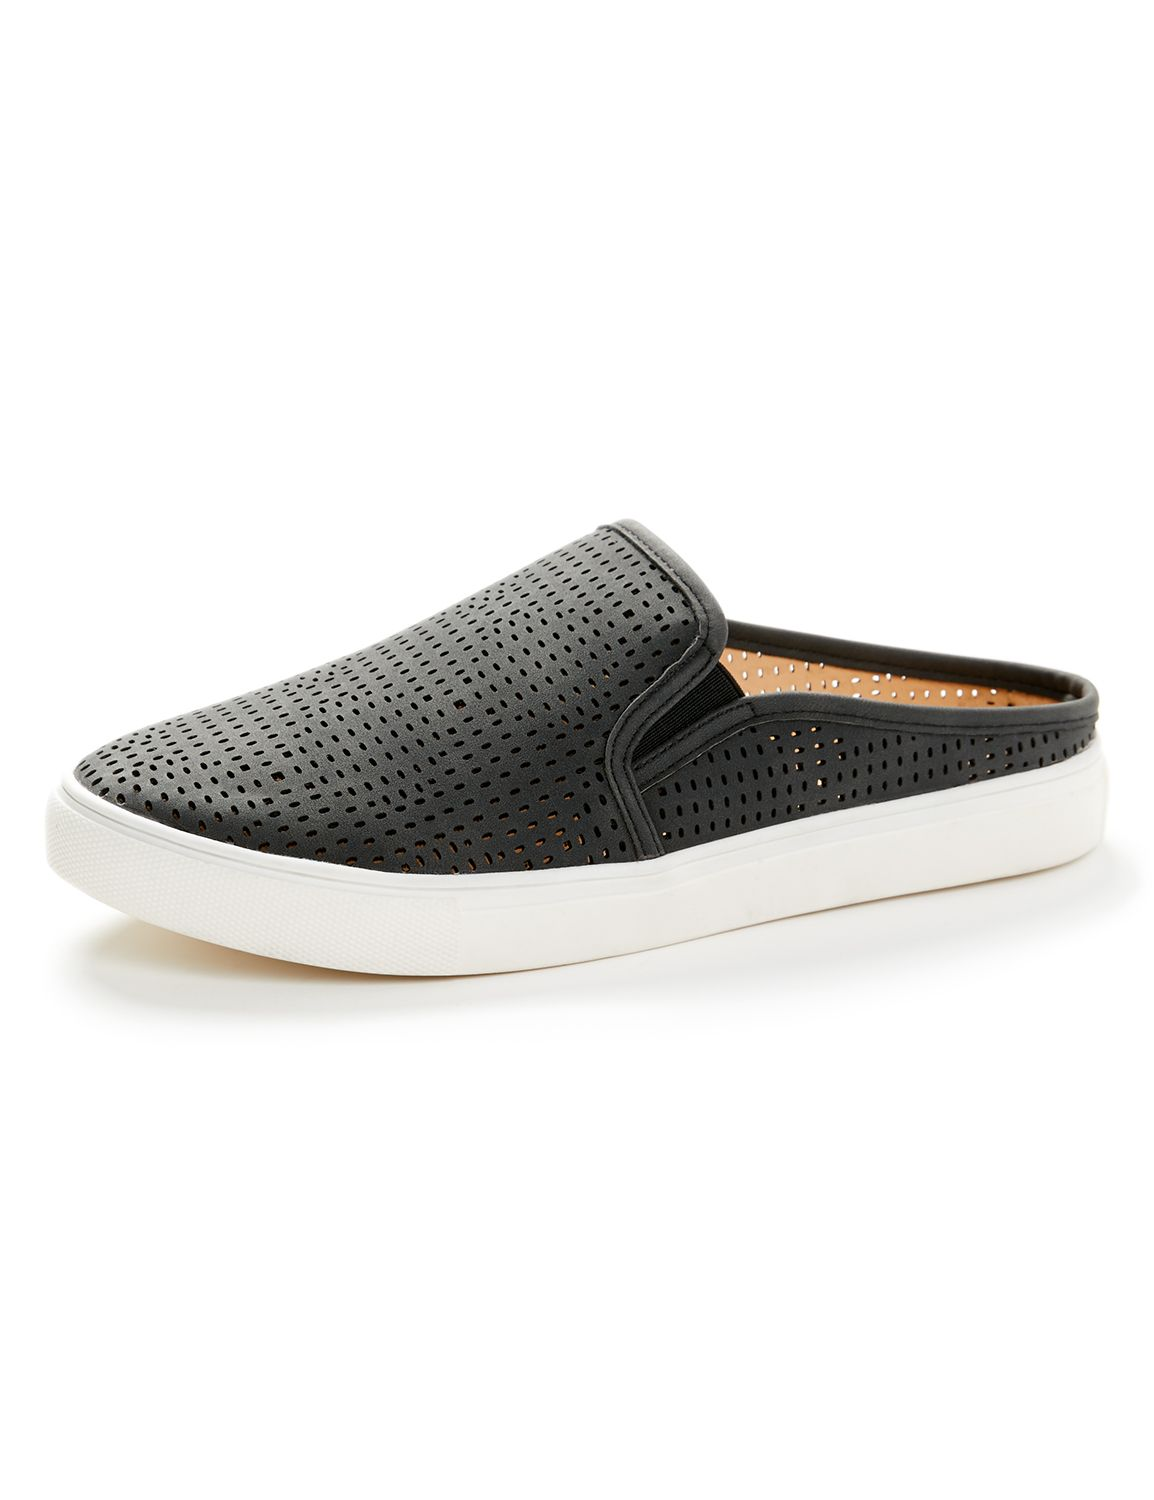 Good Soles Slip-On Sneaker Perf Slip On Sneaker M24813 MP-300097771